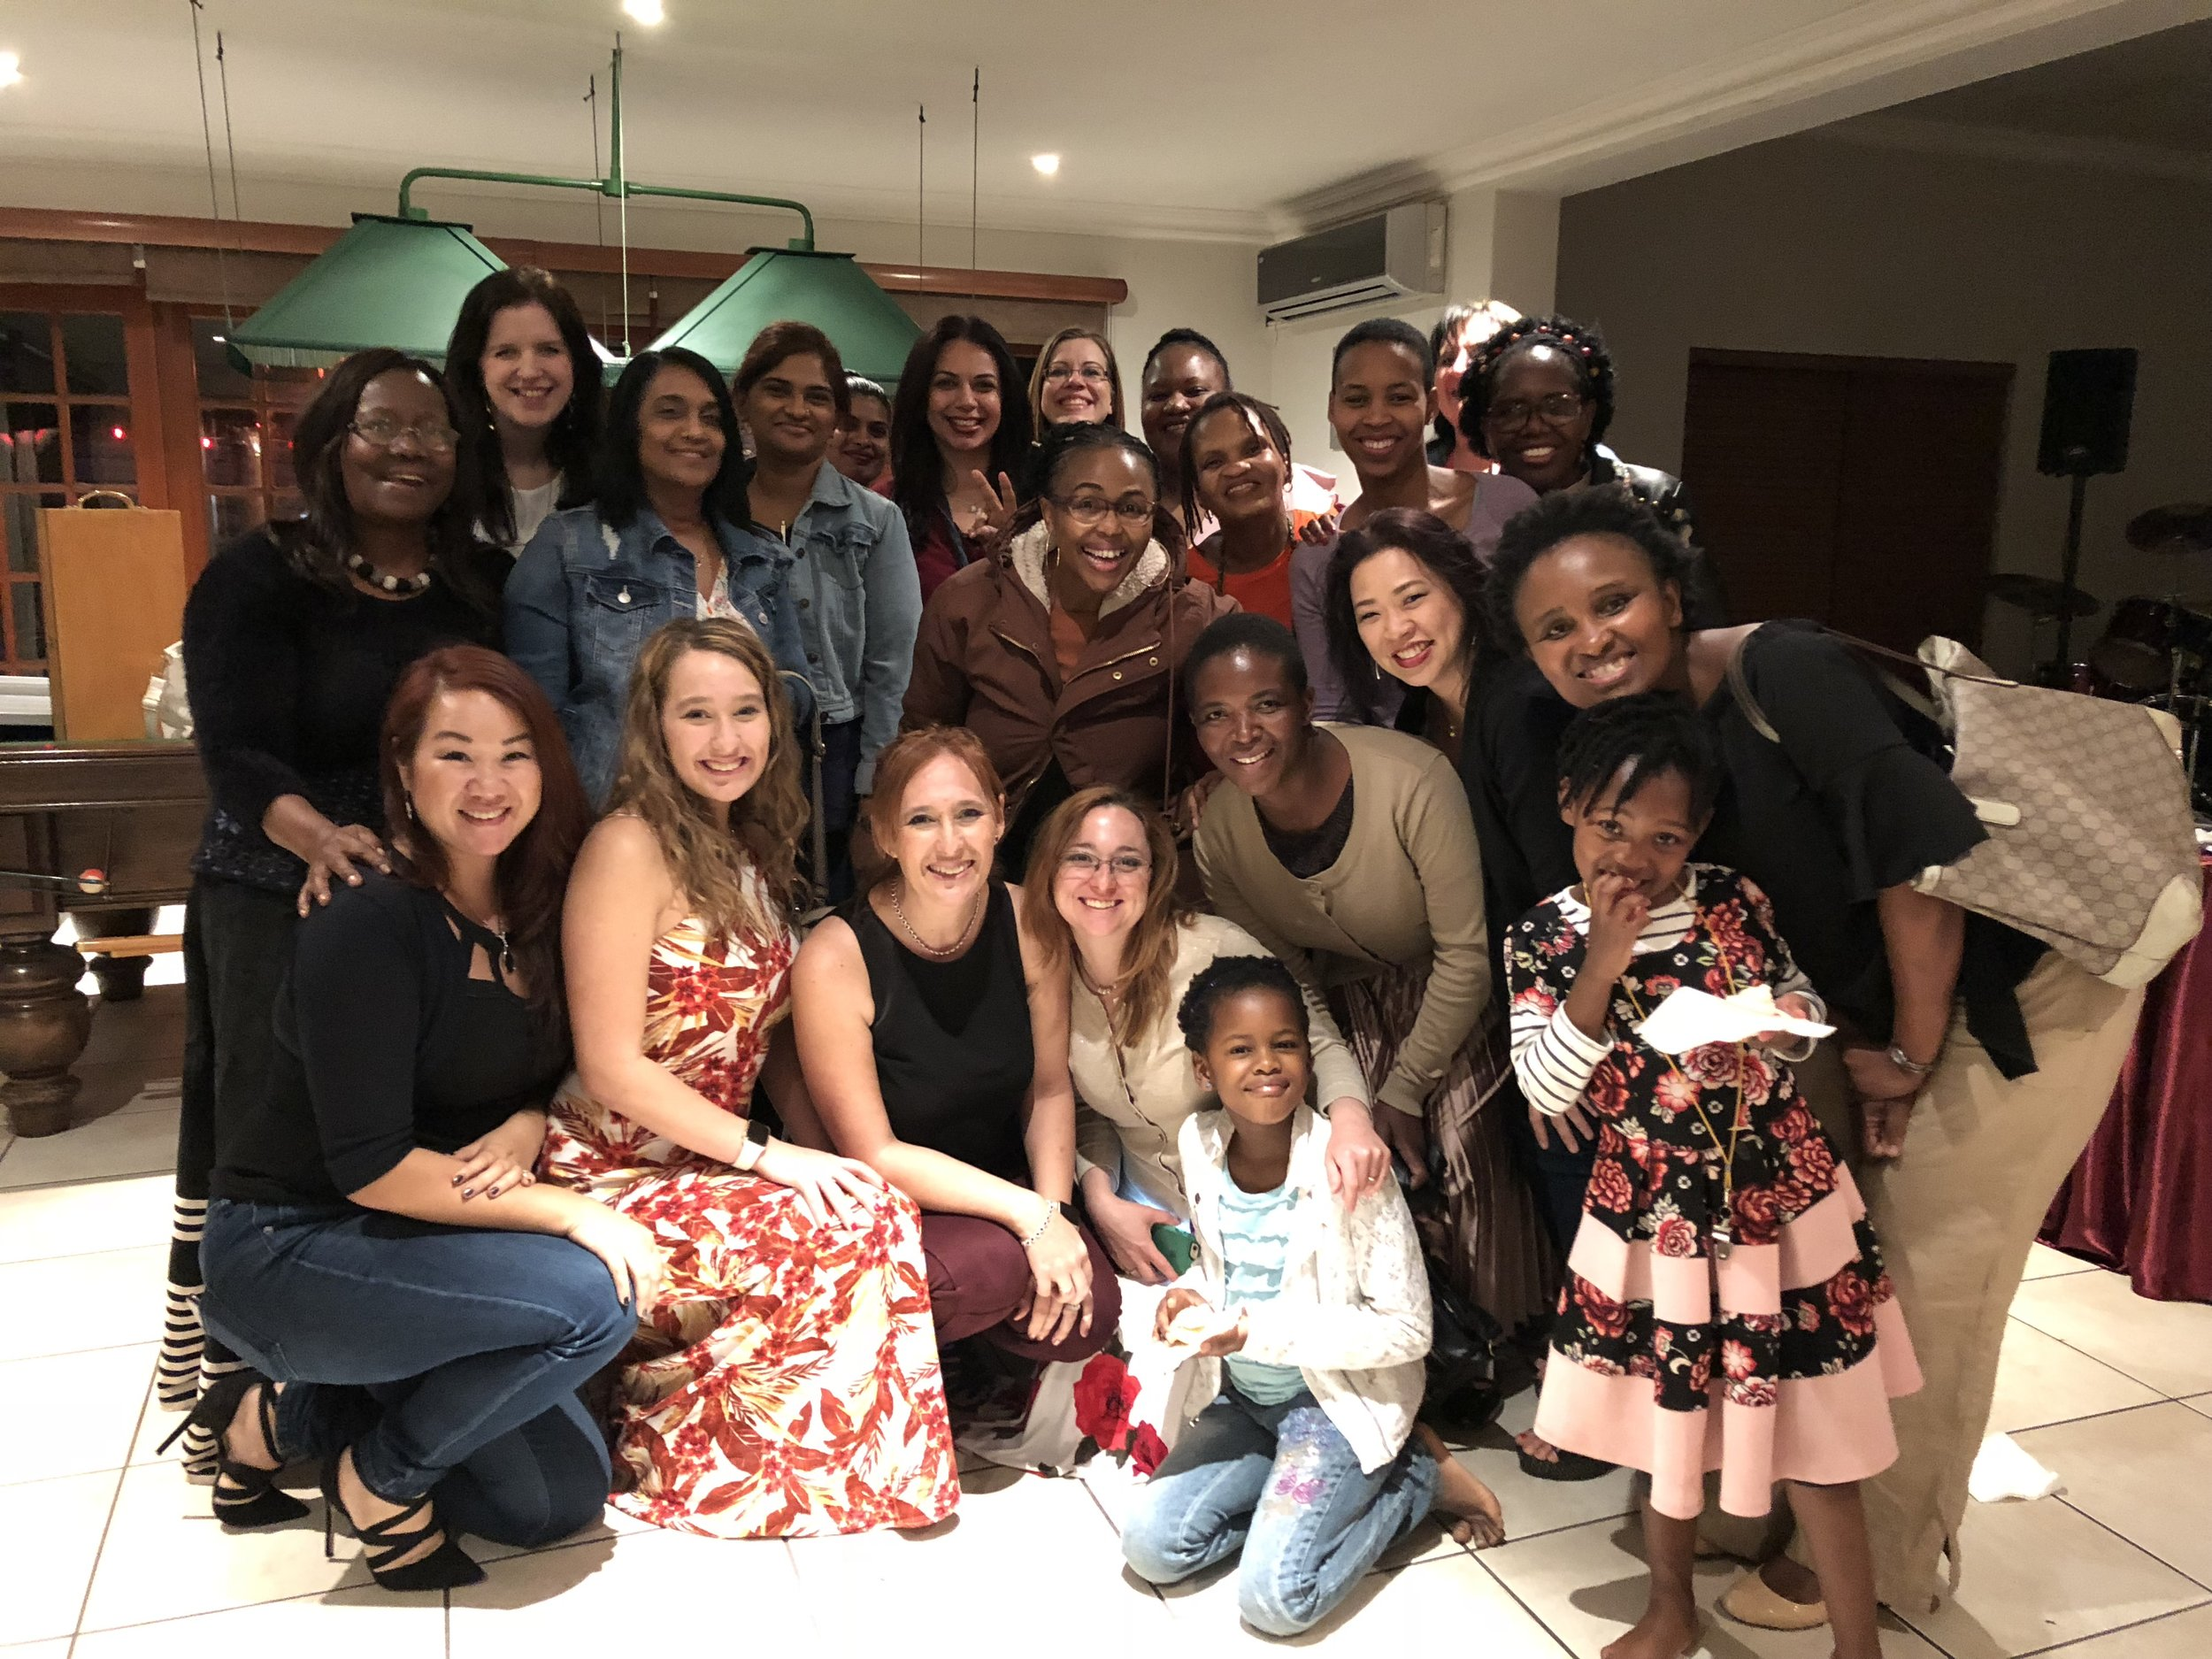 Esther Effect, Johannesburg South Africa, Nov 2018